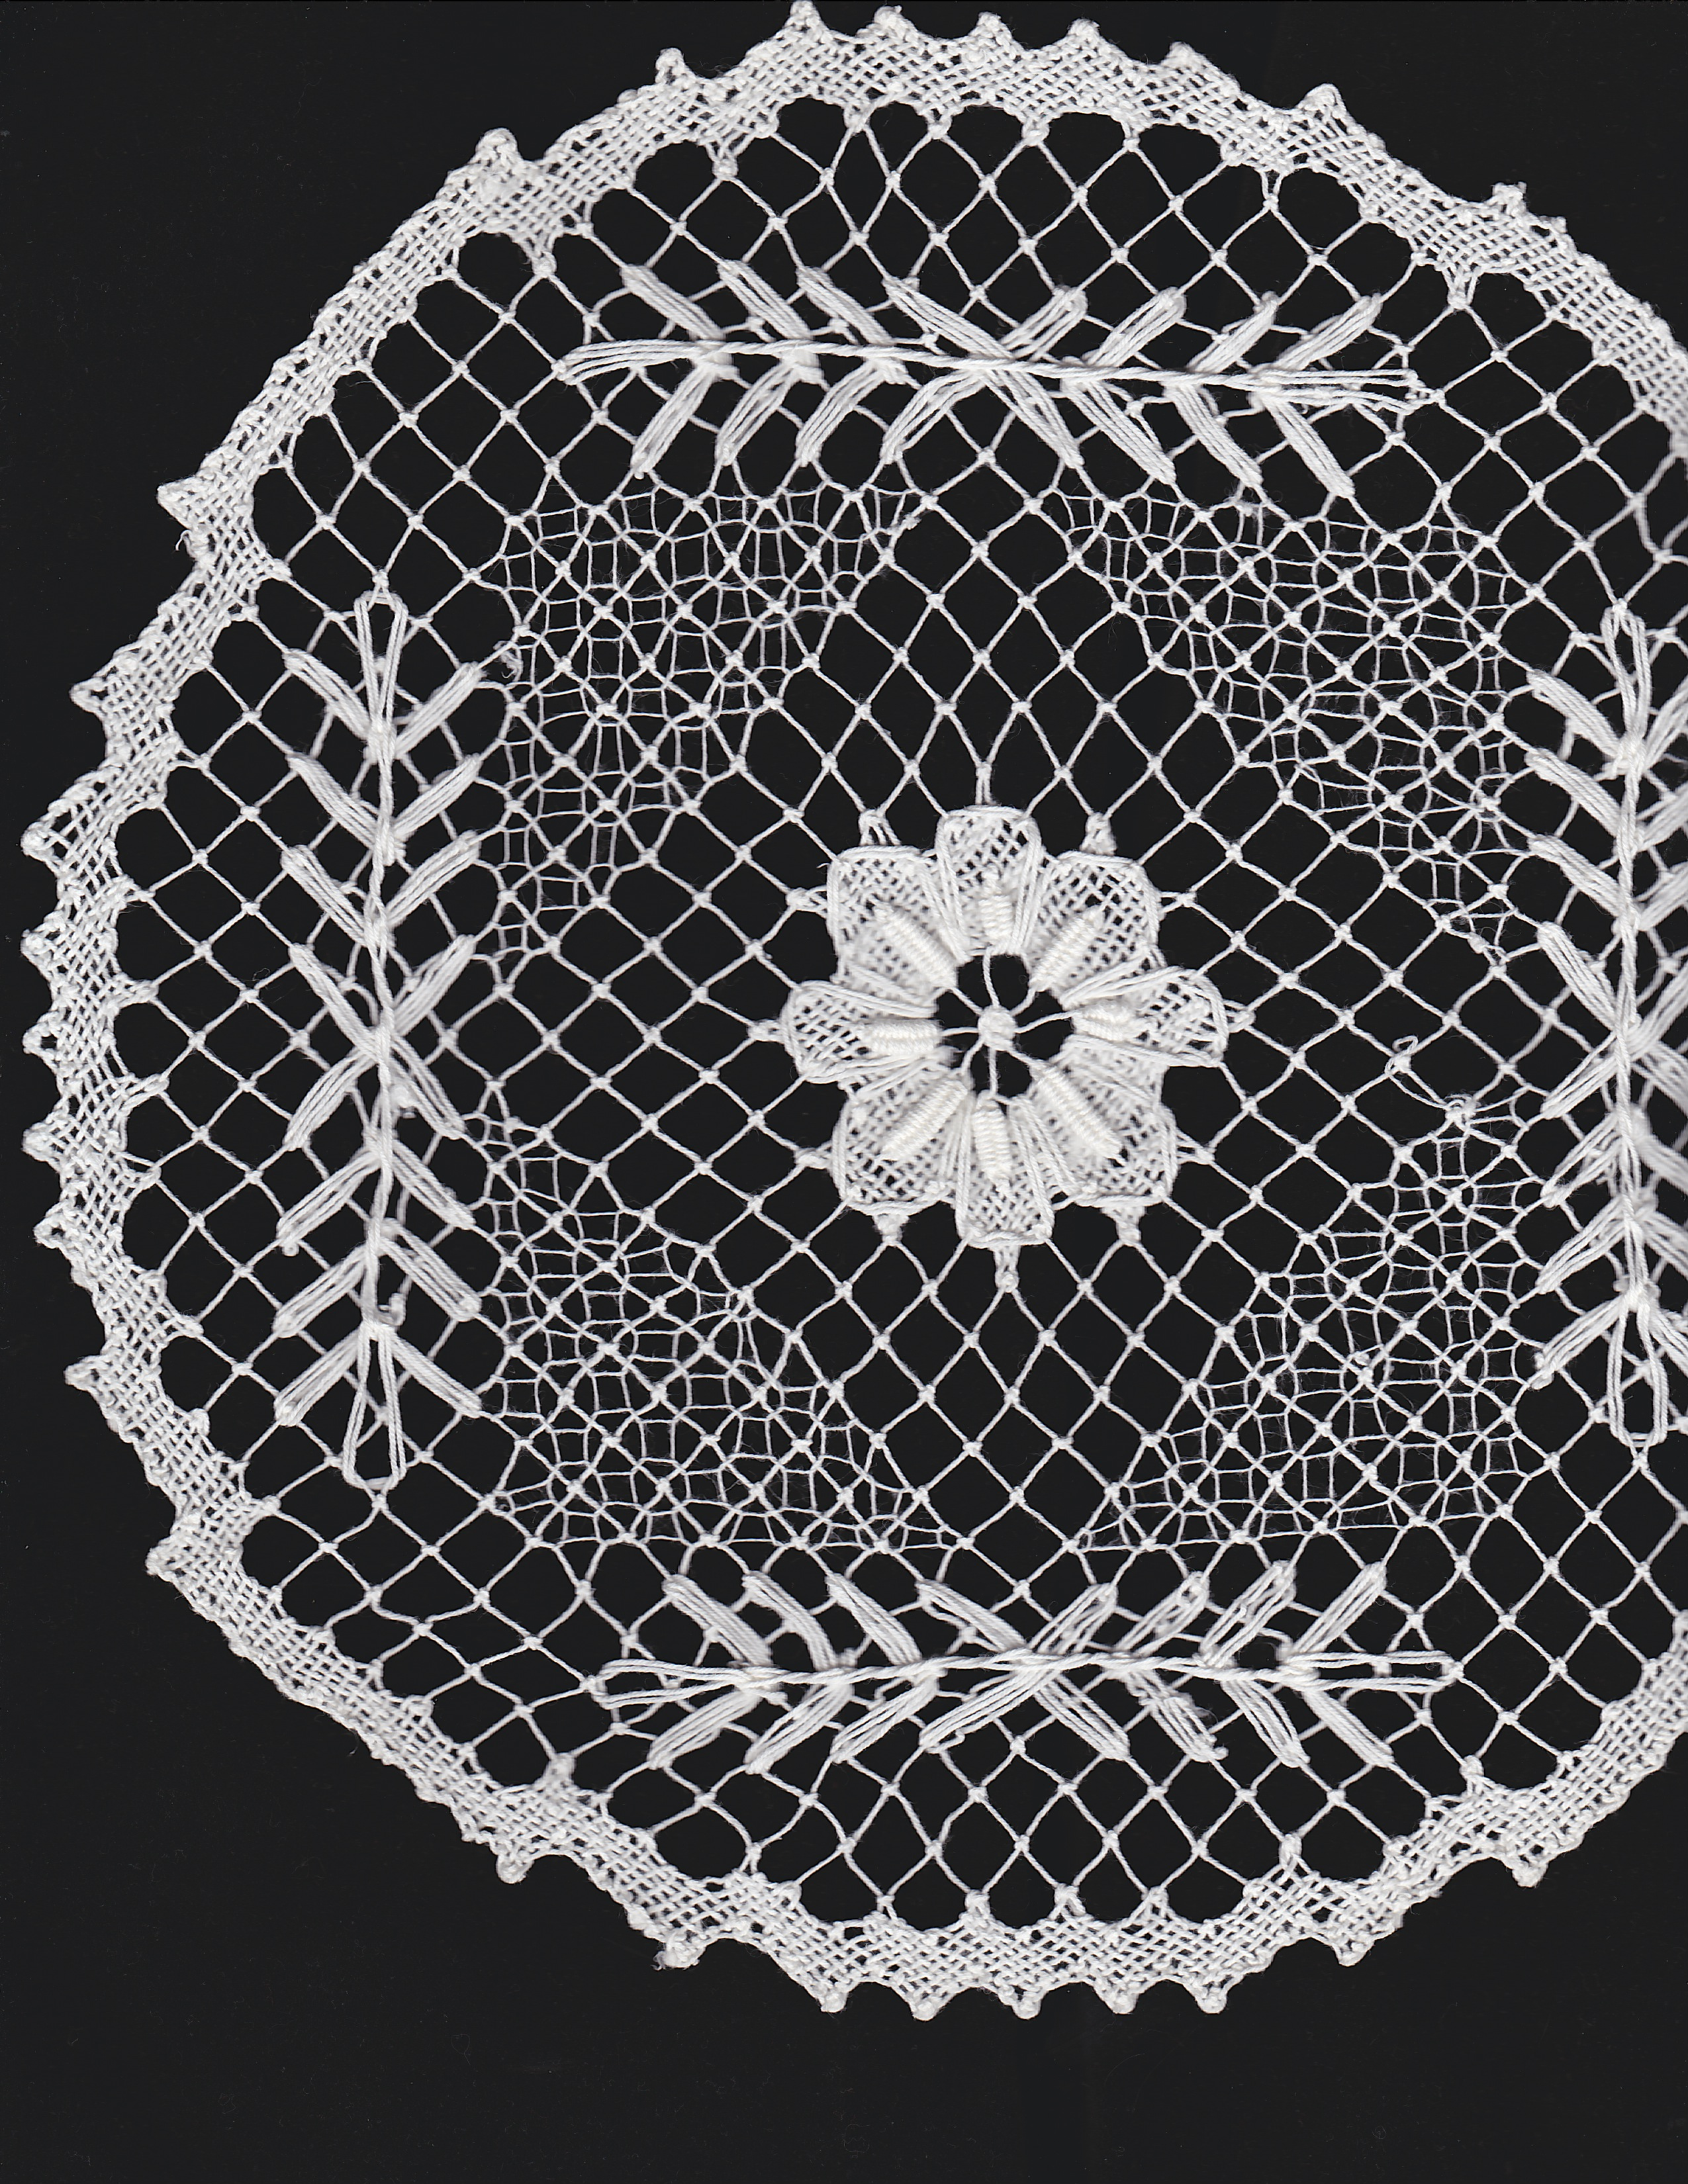 Diy supply lace doily lamp handmade lace doilies diy lamp shade tuscany lace hand knotted doily in white colour arubaitofo Image collections